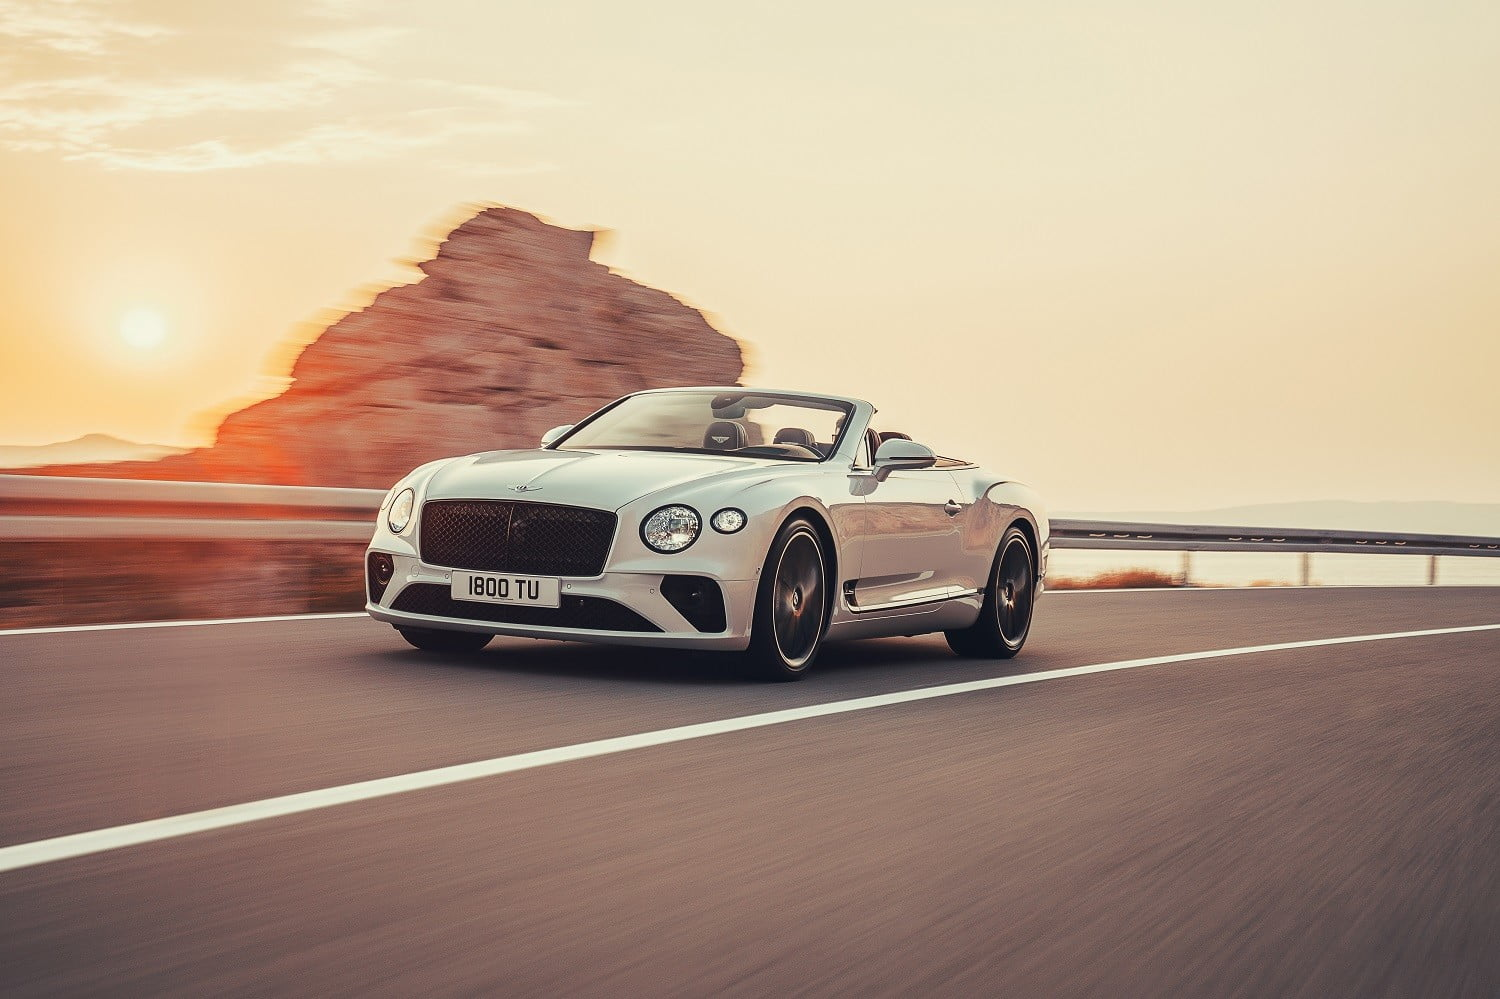 2020 Bentley Continental Gt Convertible Oozes Style And Power